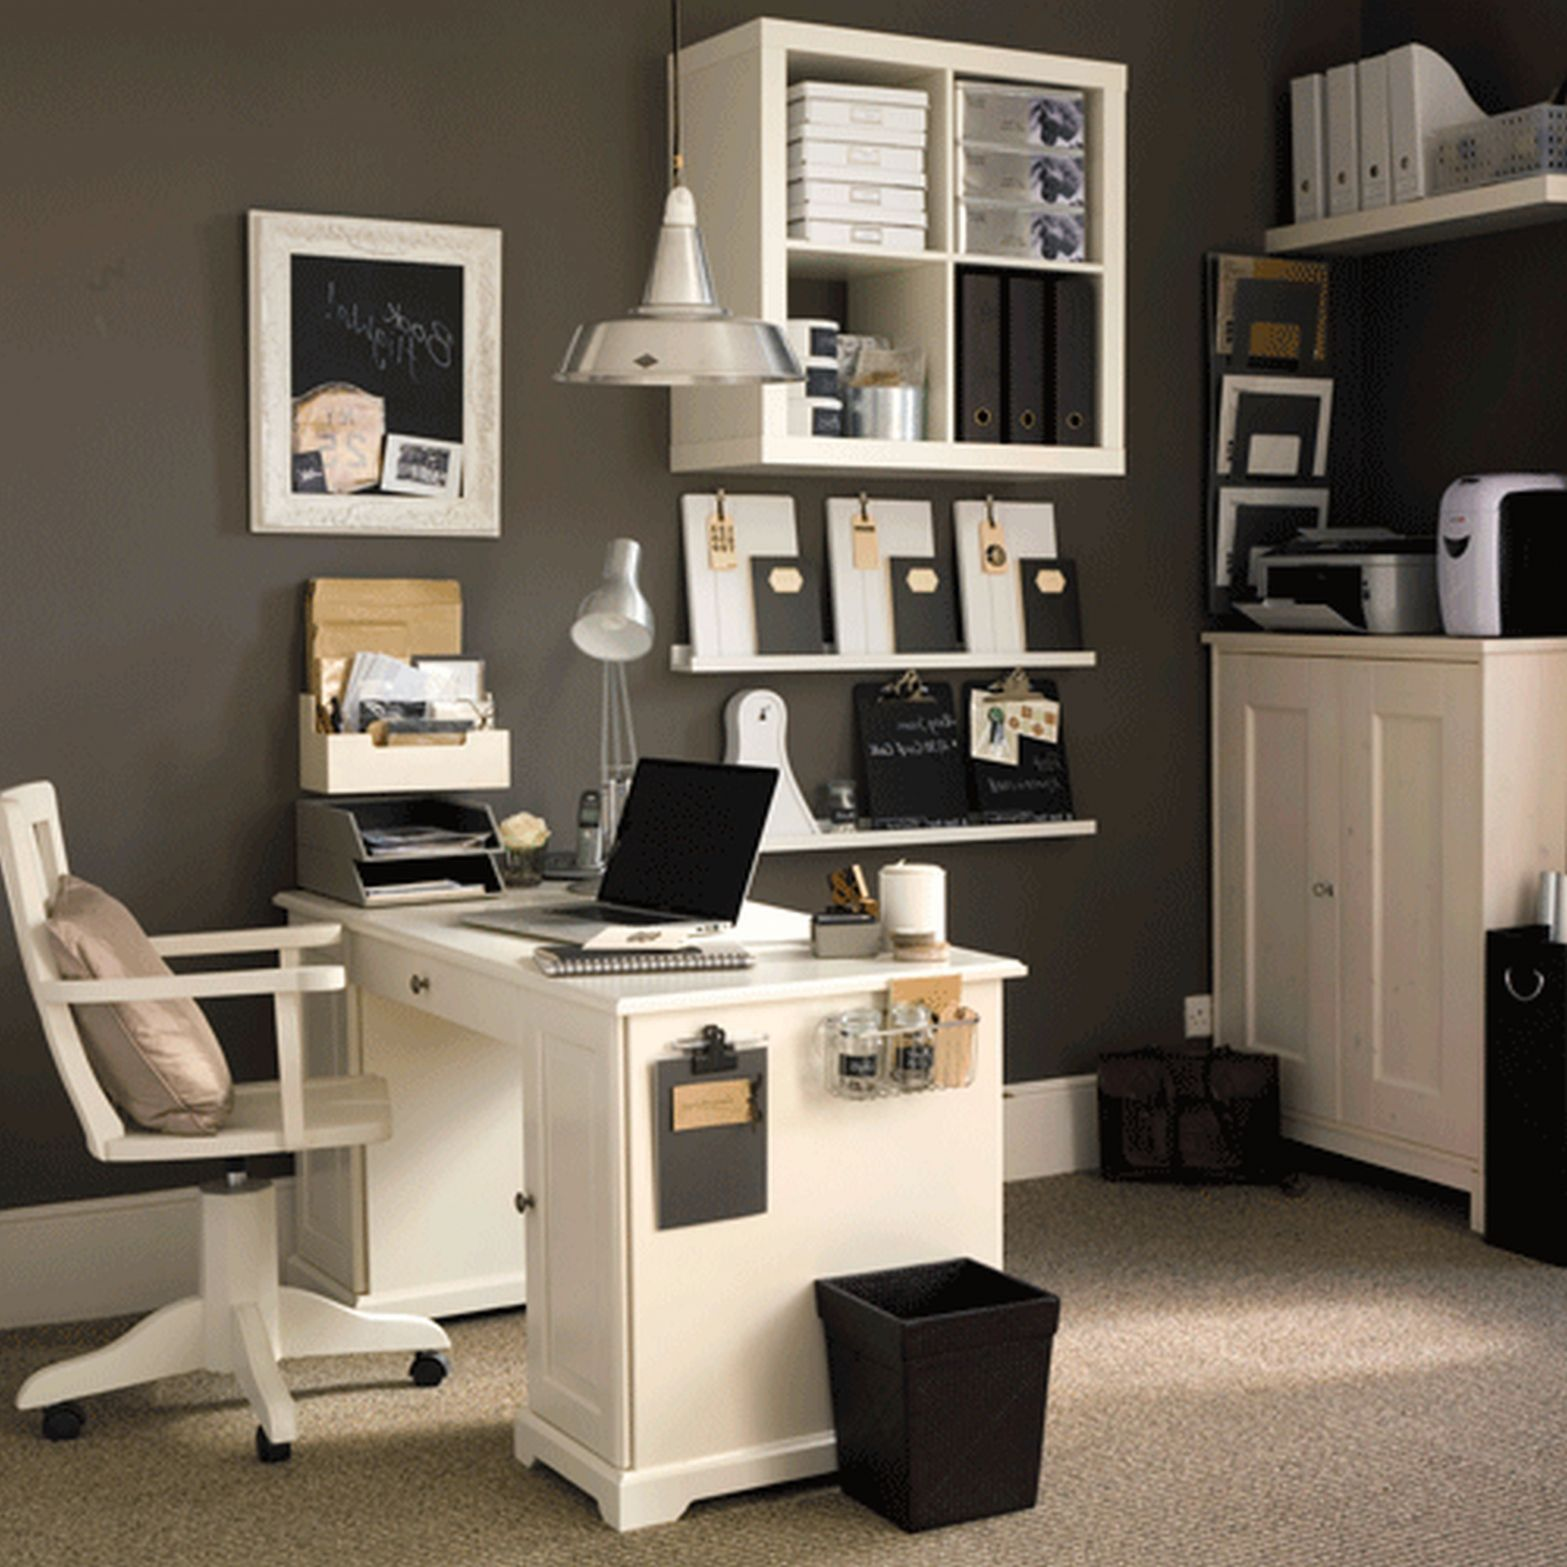 70+ Small Room Office Ideas  Home Office Desk Furniture